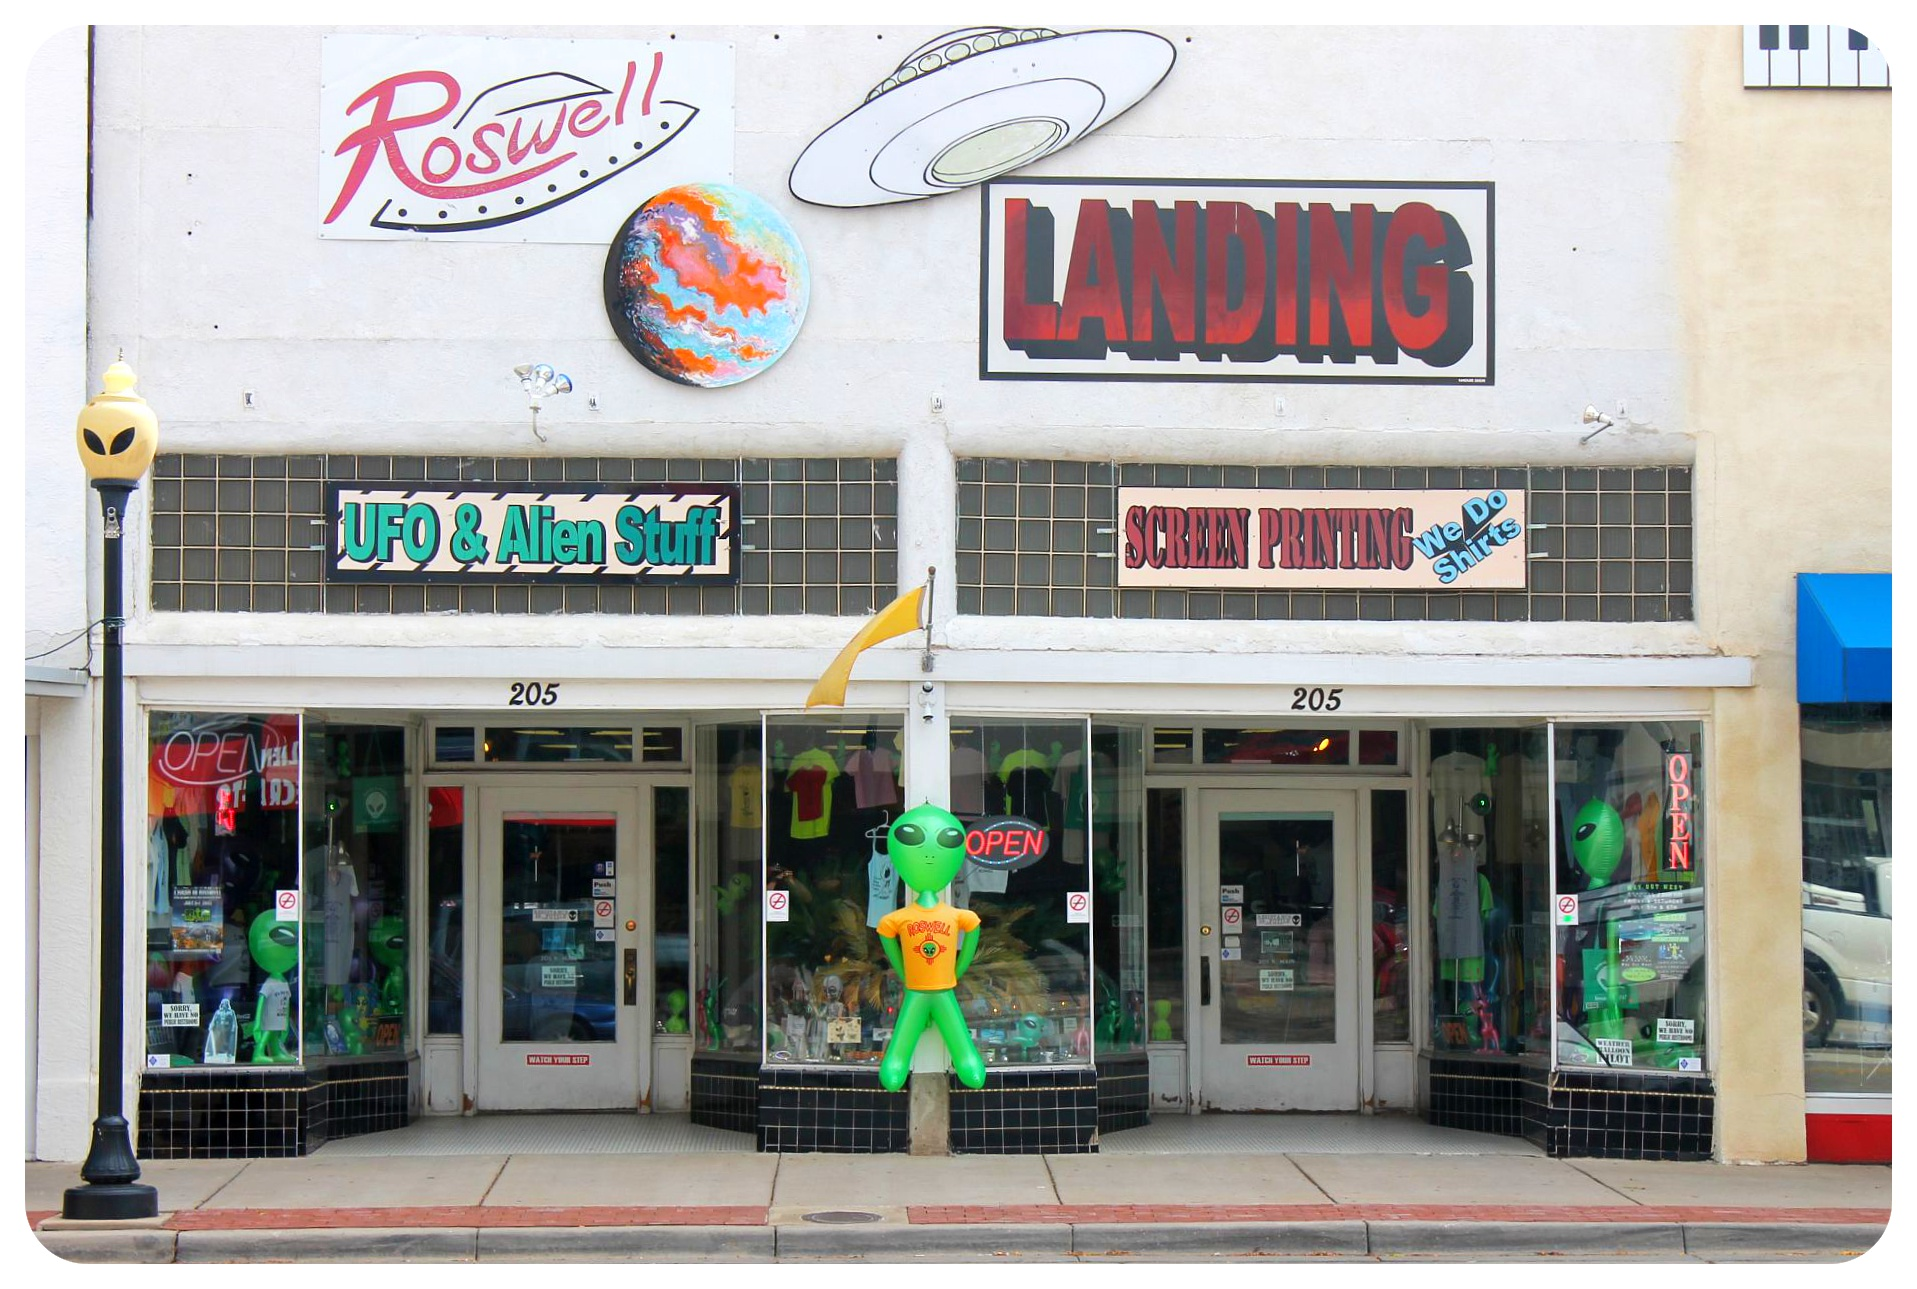 Roswell, New Mexico: Town with an identity crisis